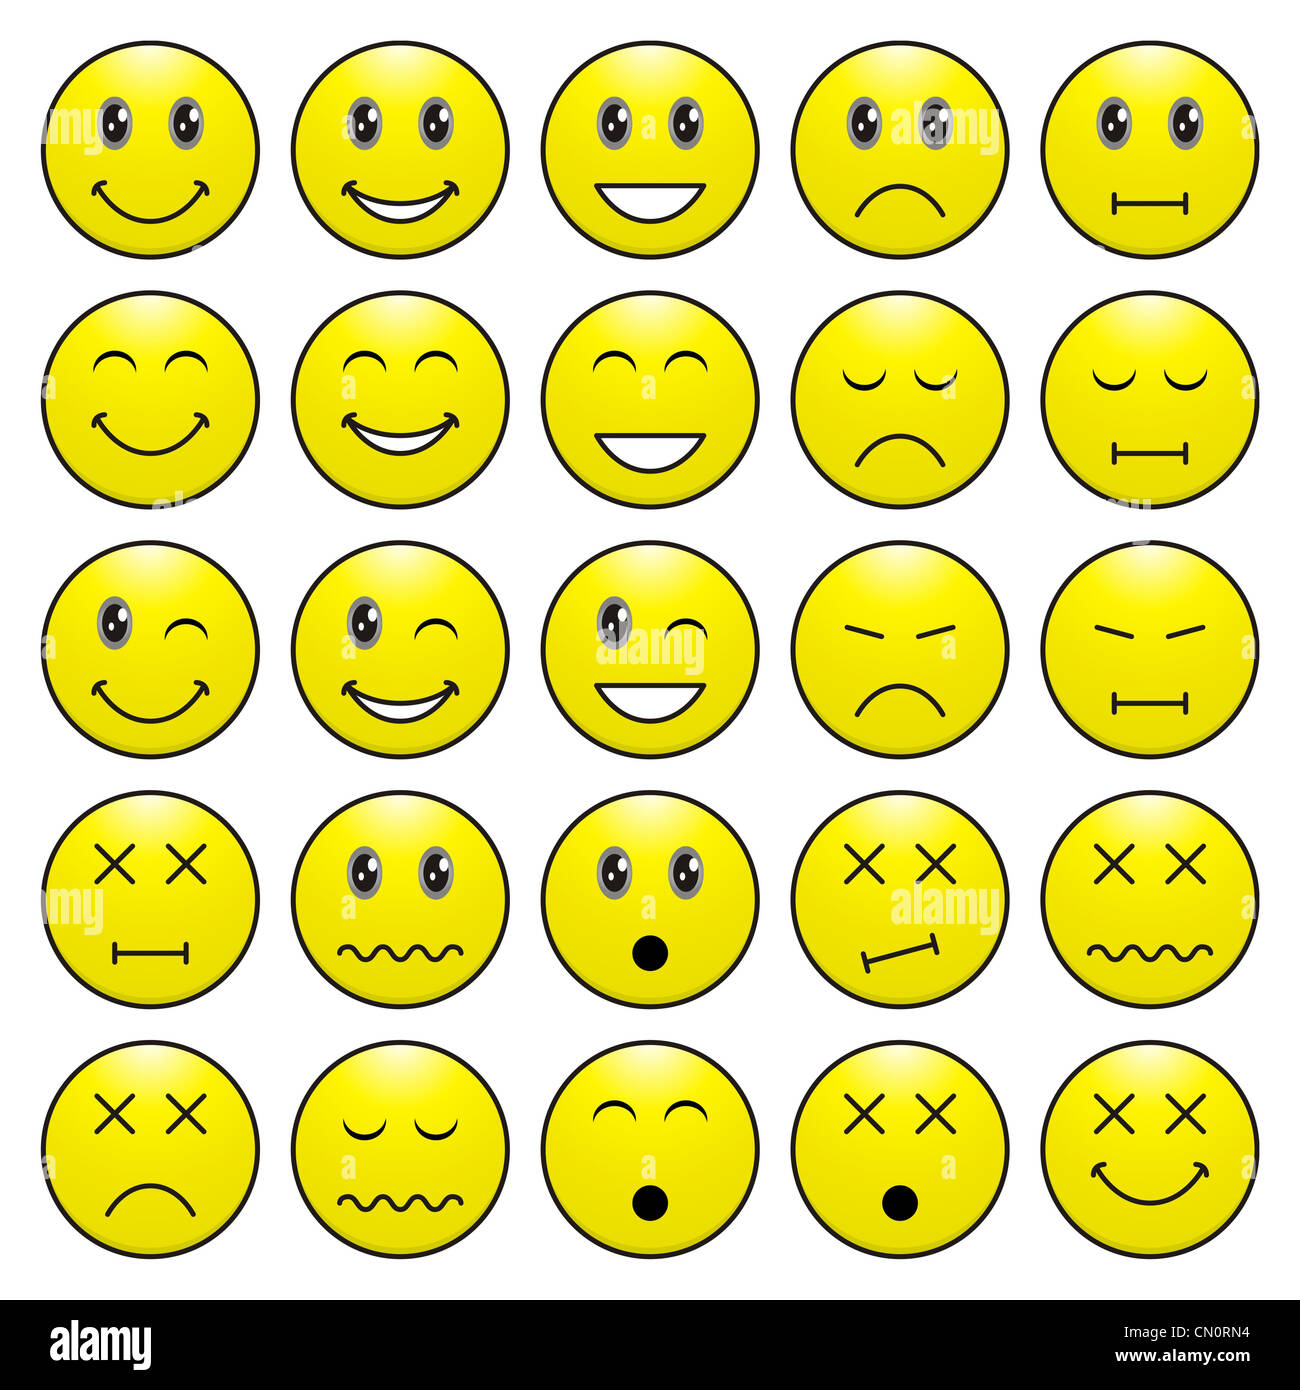 Pack of faces (emoticons) with various emotions expression - Stock Image